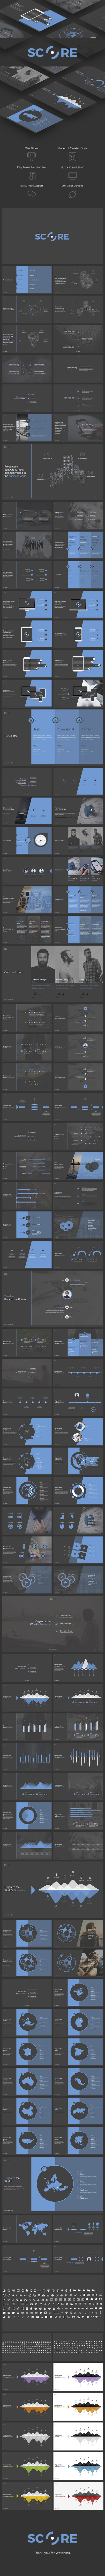 Score PowerPoint - PowerPoint Templates Presentation Templates